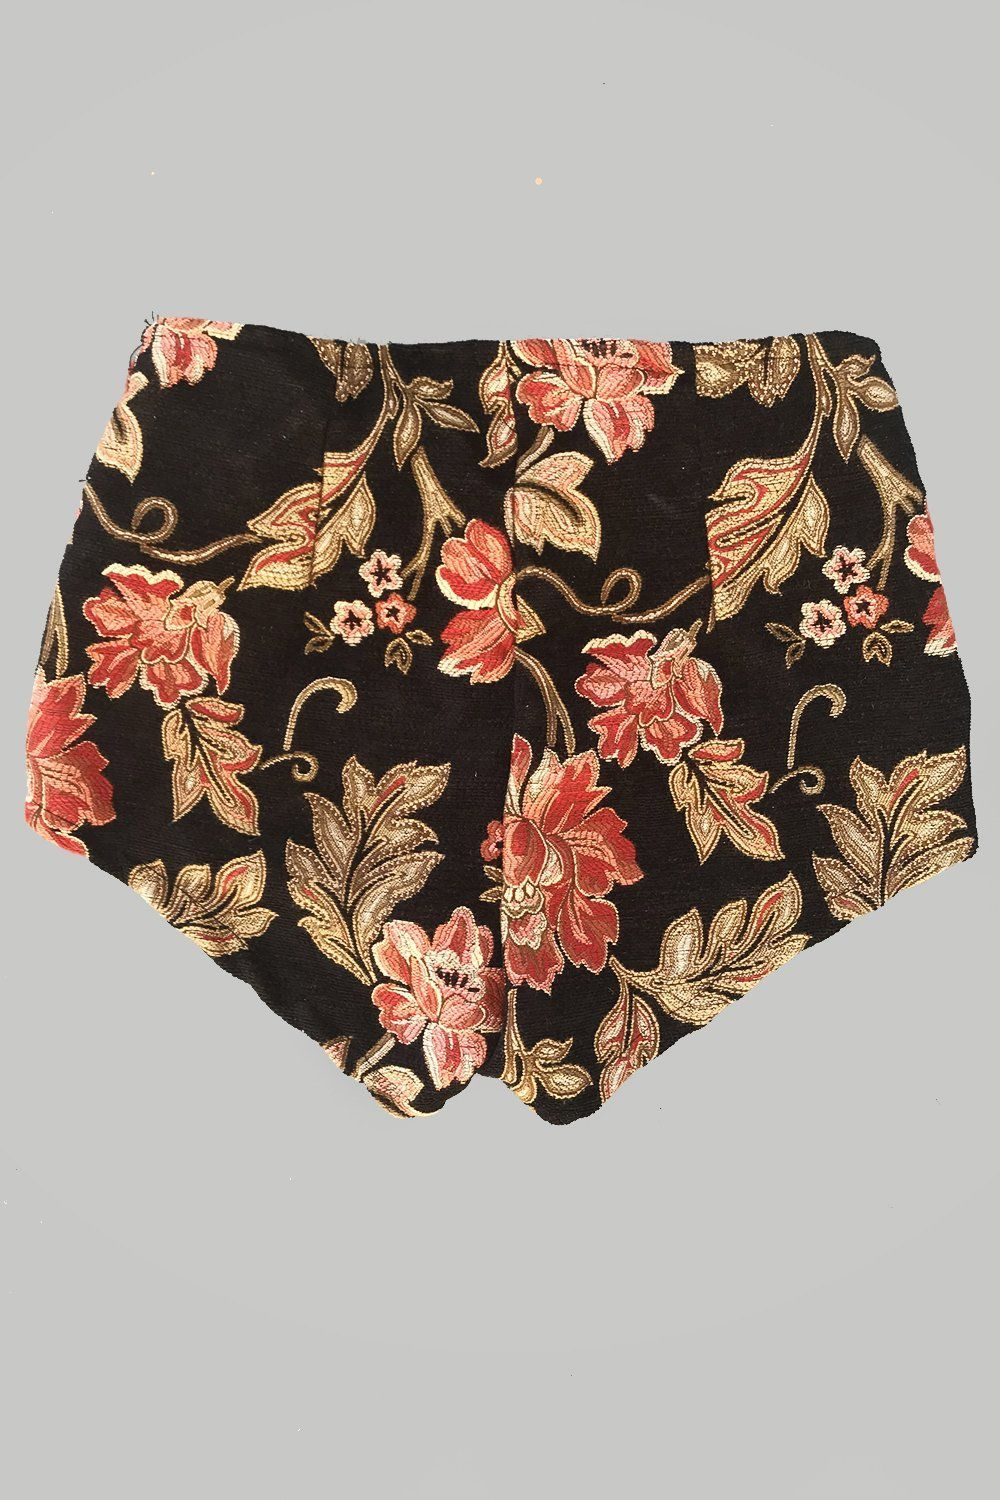 PRE-ORDER Floral Nights Zip Front Tapestry Shorts